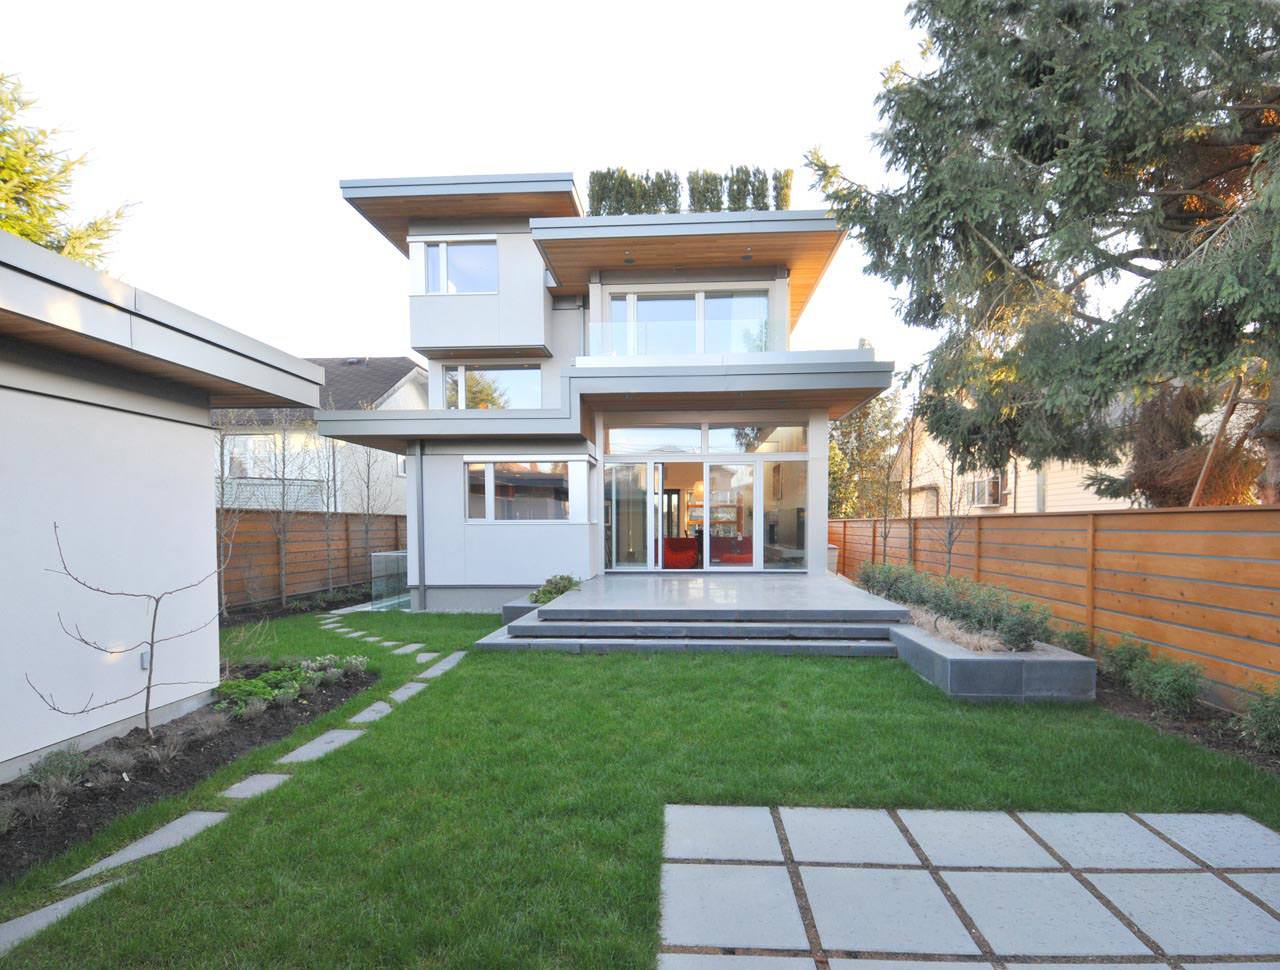 Sustainable Home Design In Vancouver  iDesignArch  Interior Design Architecture  Interior